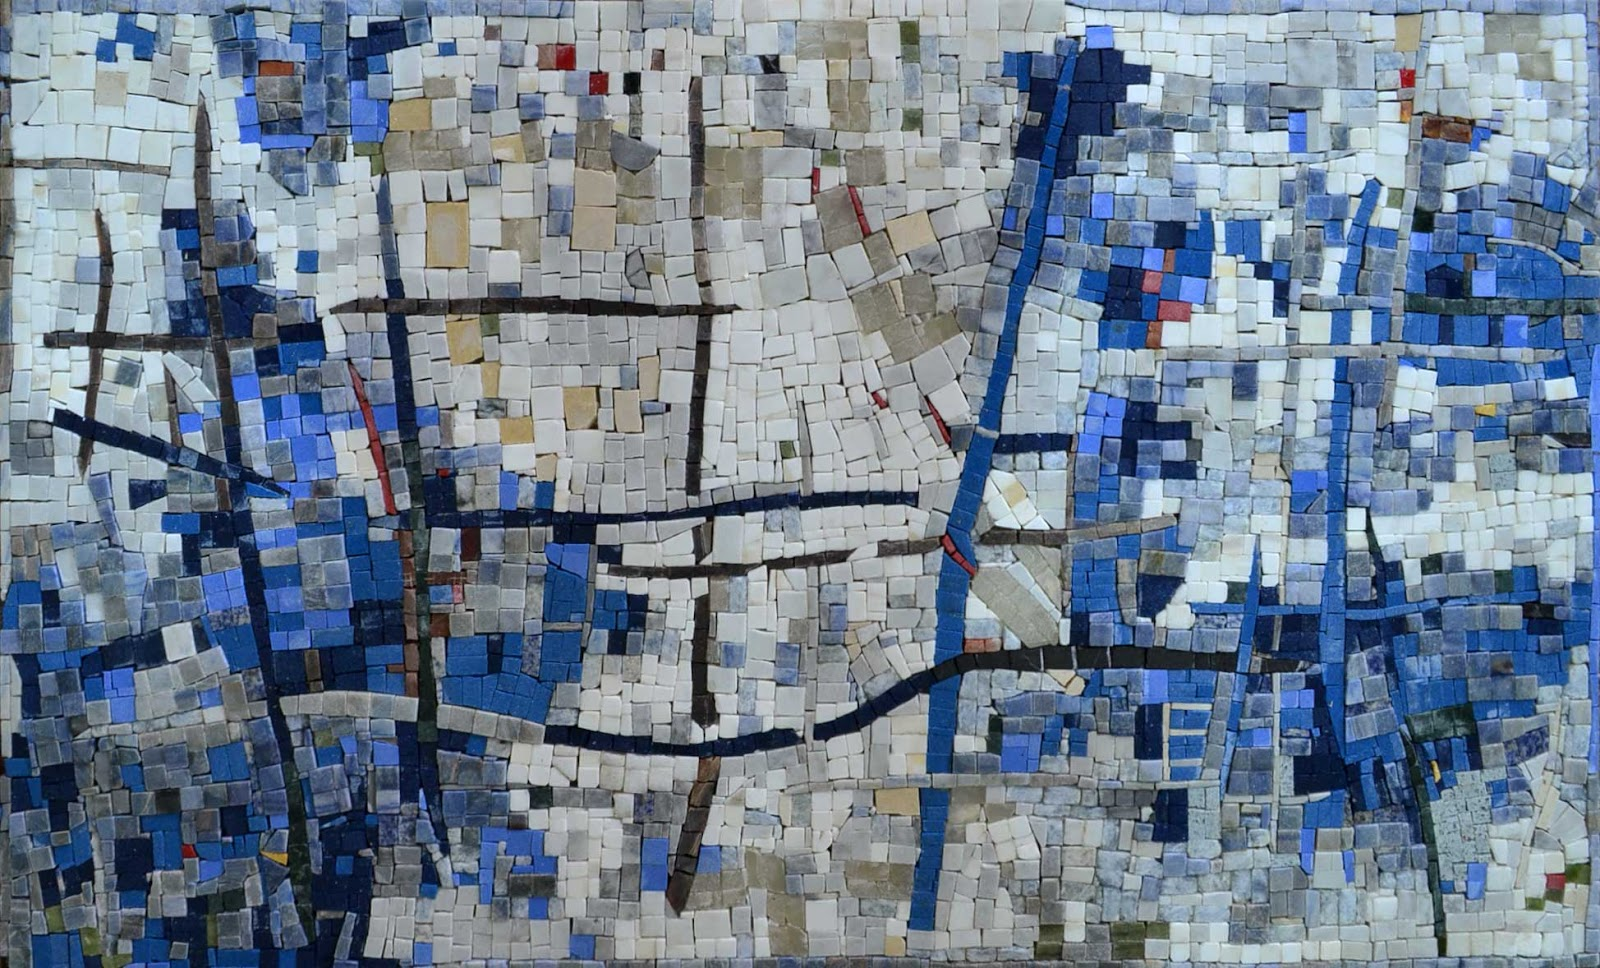 The Cycle of Water- Abstract Mosaic Art by Mozaico